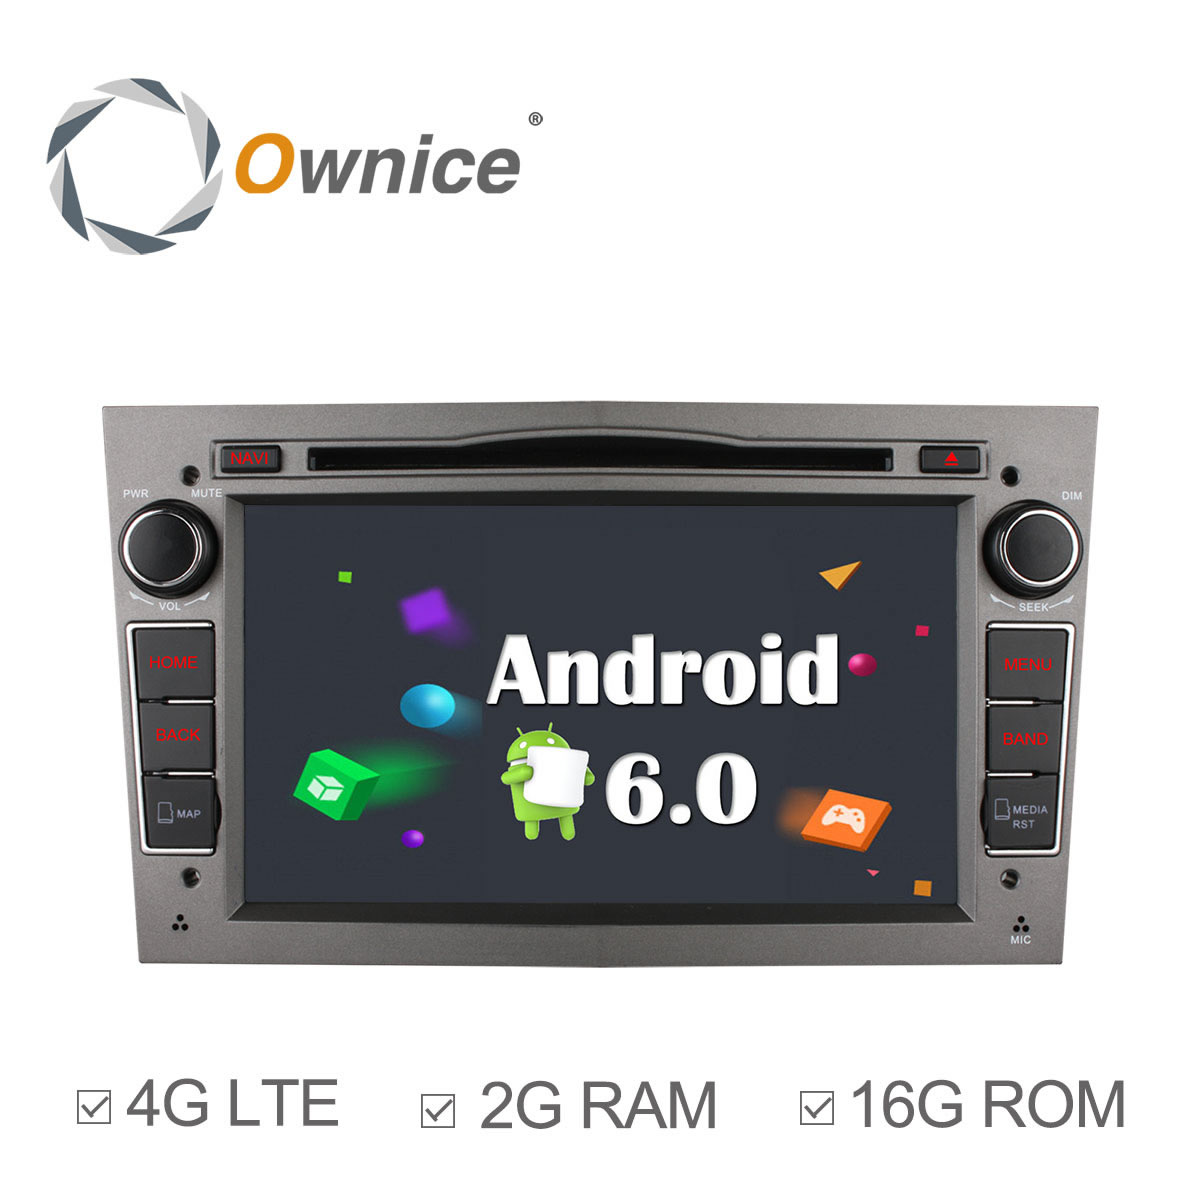 Ownice C500 Android 6.0 Quad Core 2GB RAM Car DVD Player GPS For OPEL ASTRA Zafira Combo With Radio Suppport 4G LTE Network